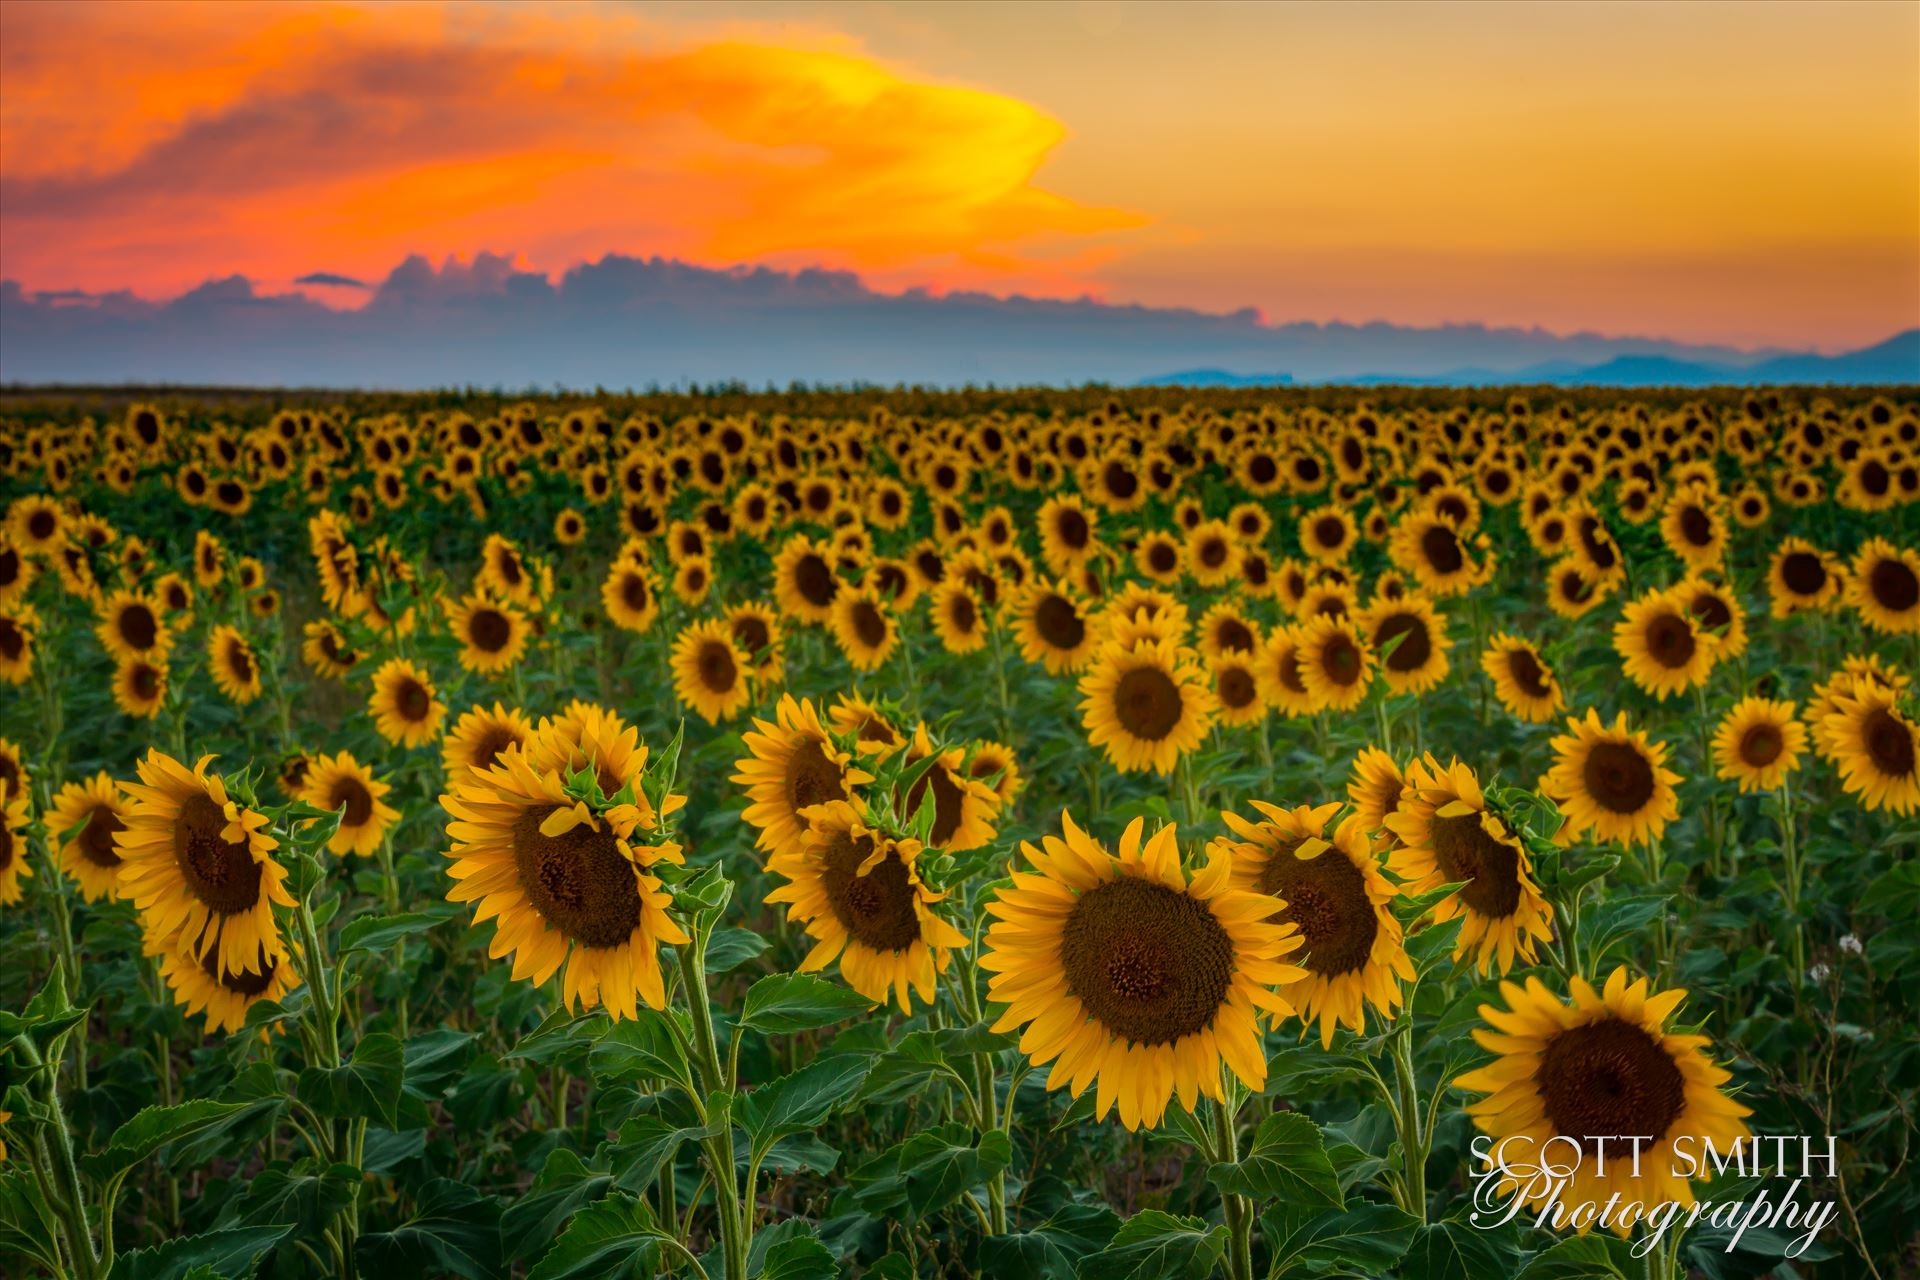 Denver Sunflowers at Sunset No 3 - Sunflower fields near Denver International Airport, on August 20th, 2016. Near 56th and E470. by D Scott Smith